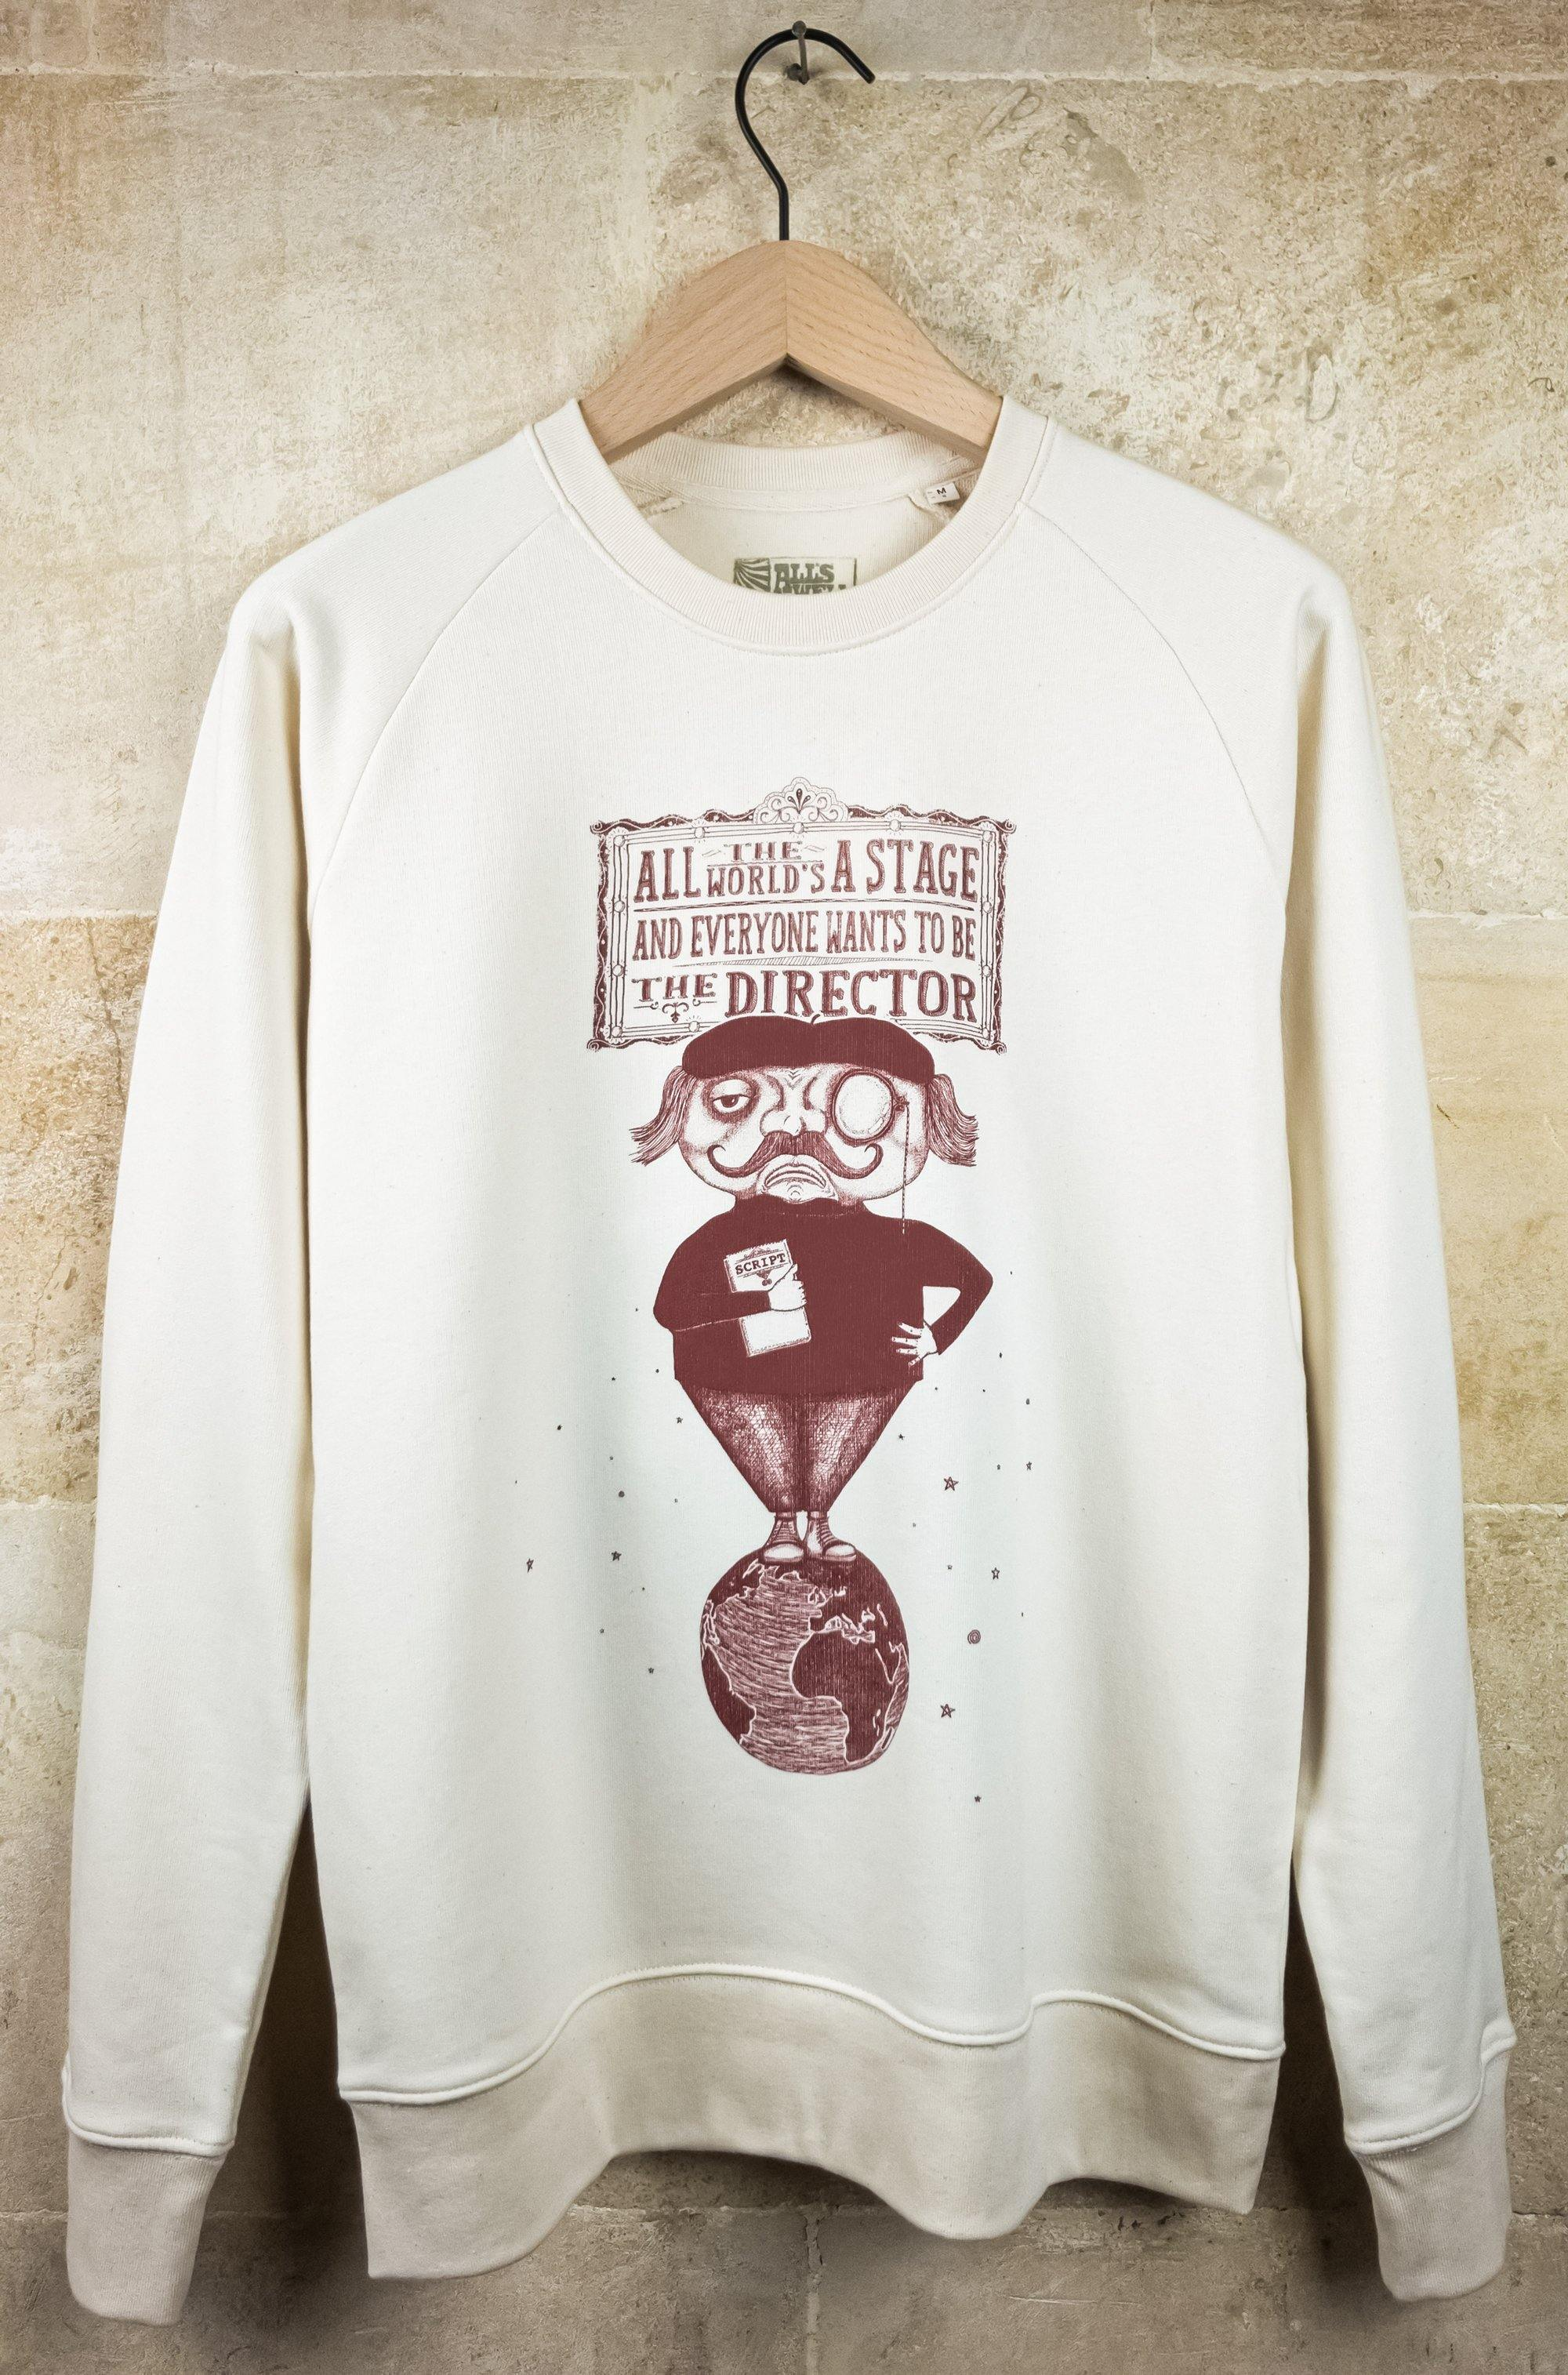 The Director show business sweatshirt hand printed organic cotton sweatshirt